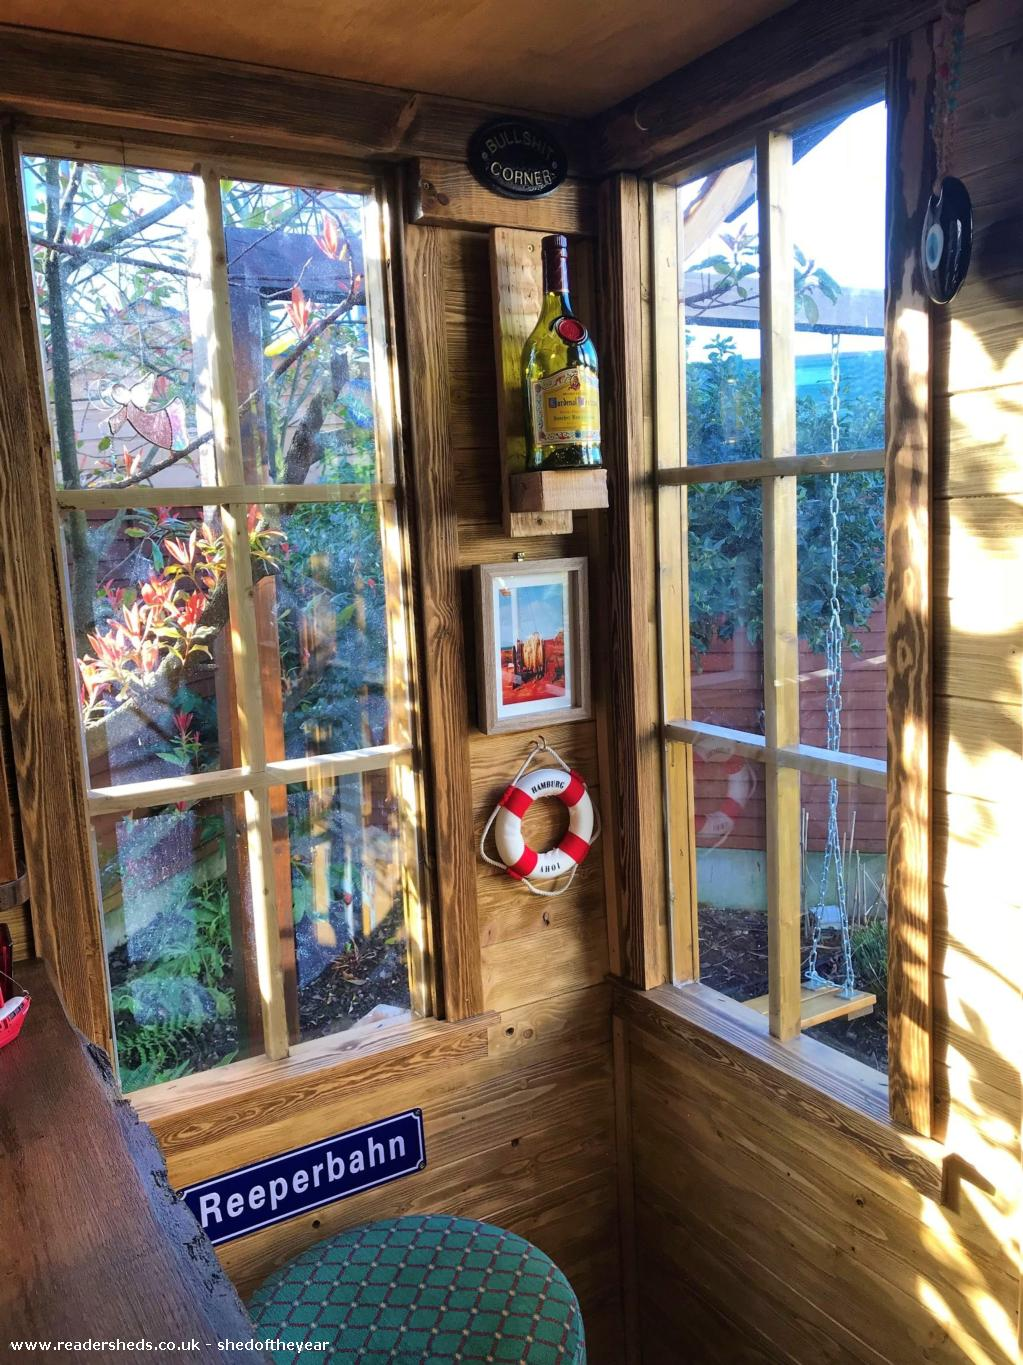 Photo of No. 88.5, entry to Shed of the year-At the bar looking out to the garden.